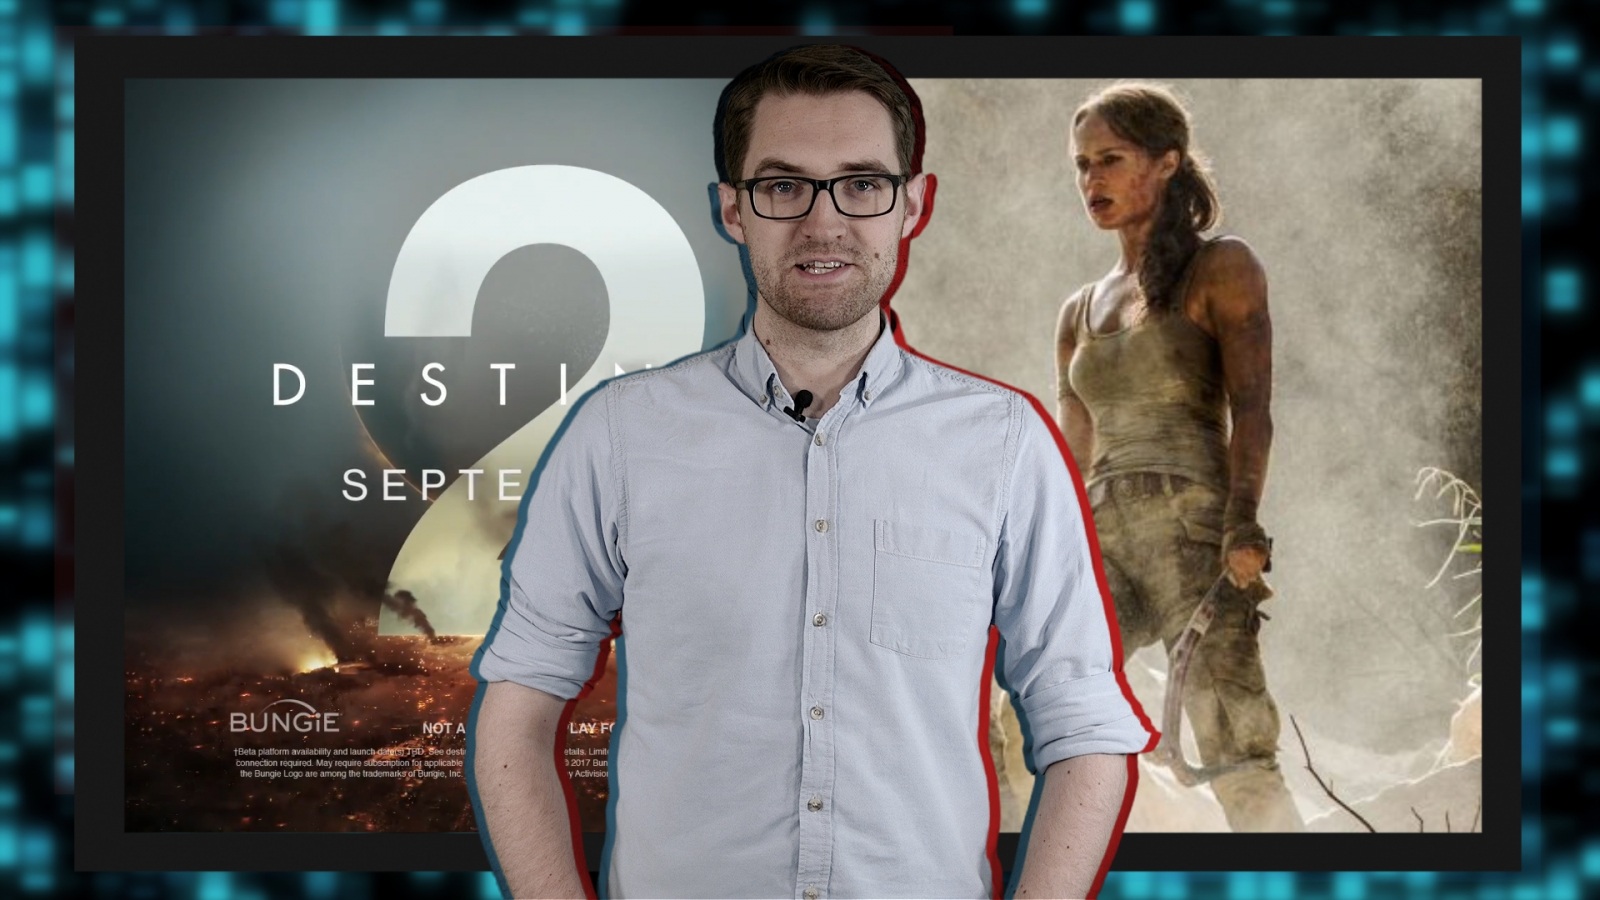 Video game news round-up: Destiny 2 revealed, Dota 2 TI7 dated and Alicia Vikander as Lara Croft